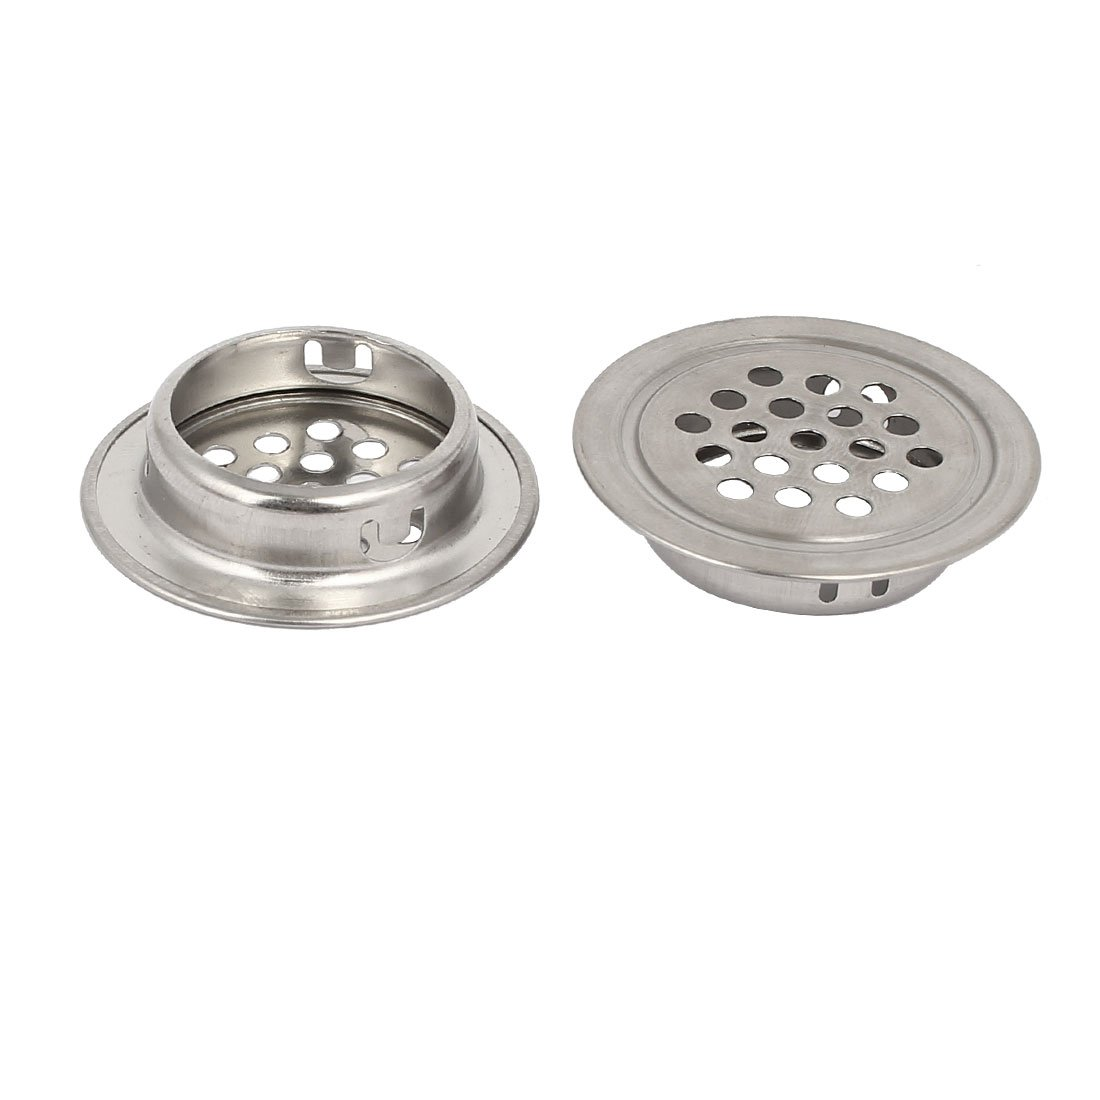 uxcell 28.5mm Bottom Dia Stainless Steel Round Shaped Mesh Hole Air Vent Louver 30pcs by uxcell (Image #2)